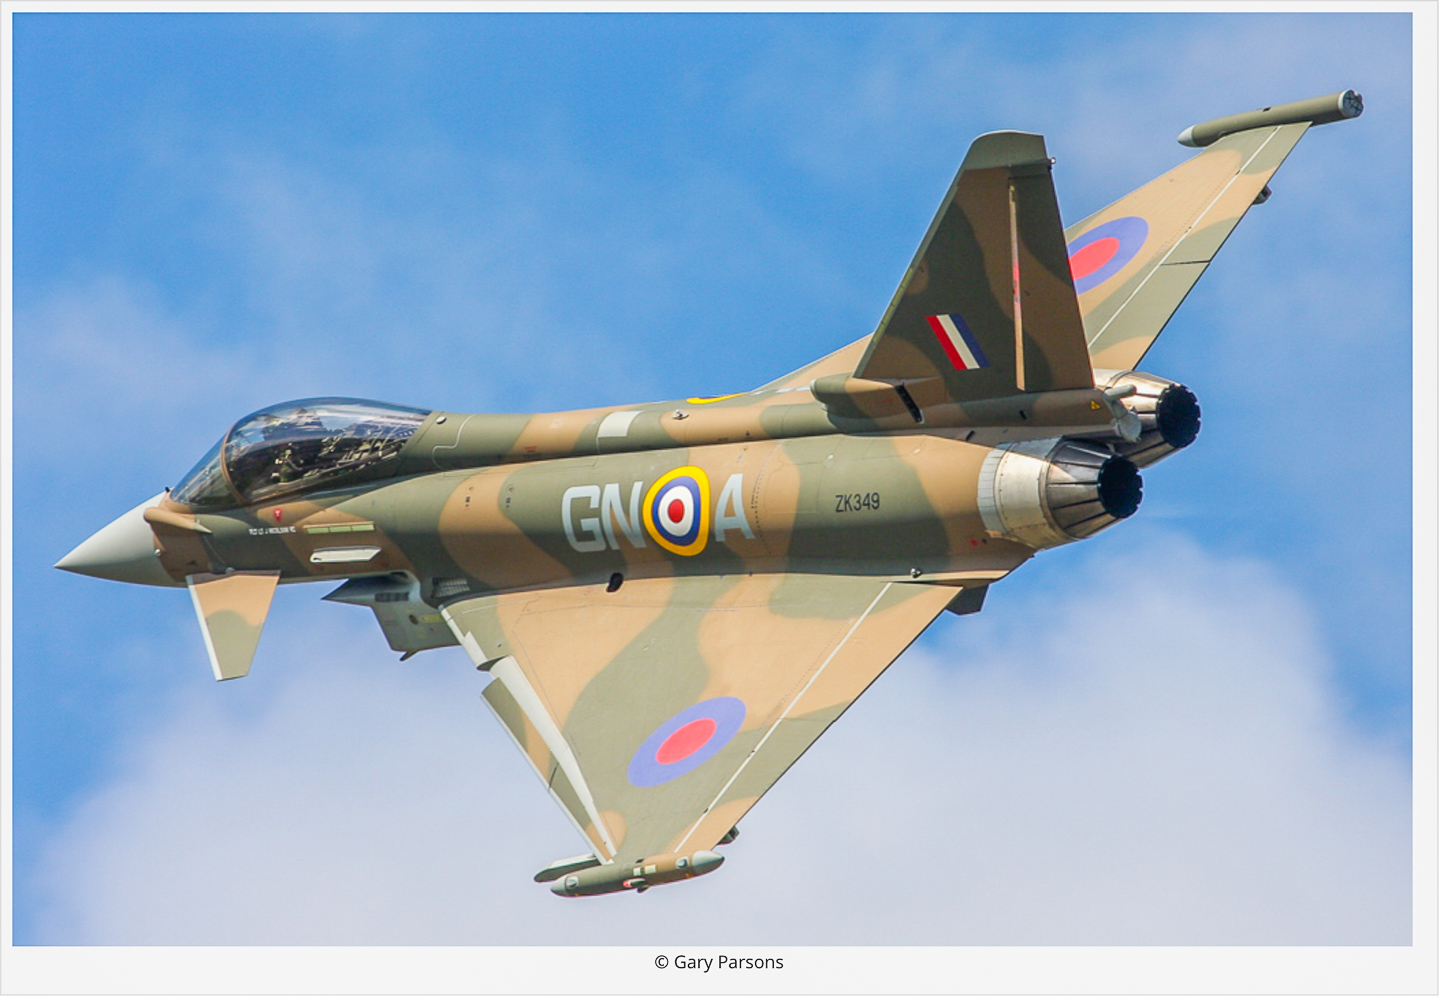 battle of britain � rafrcaf 75th anniversary schemes